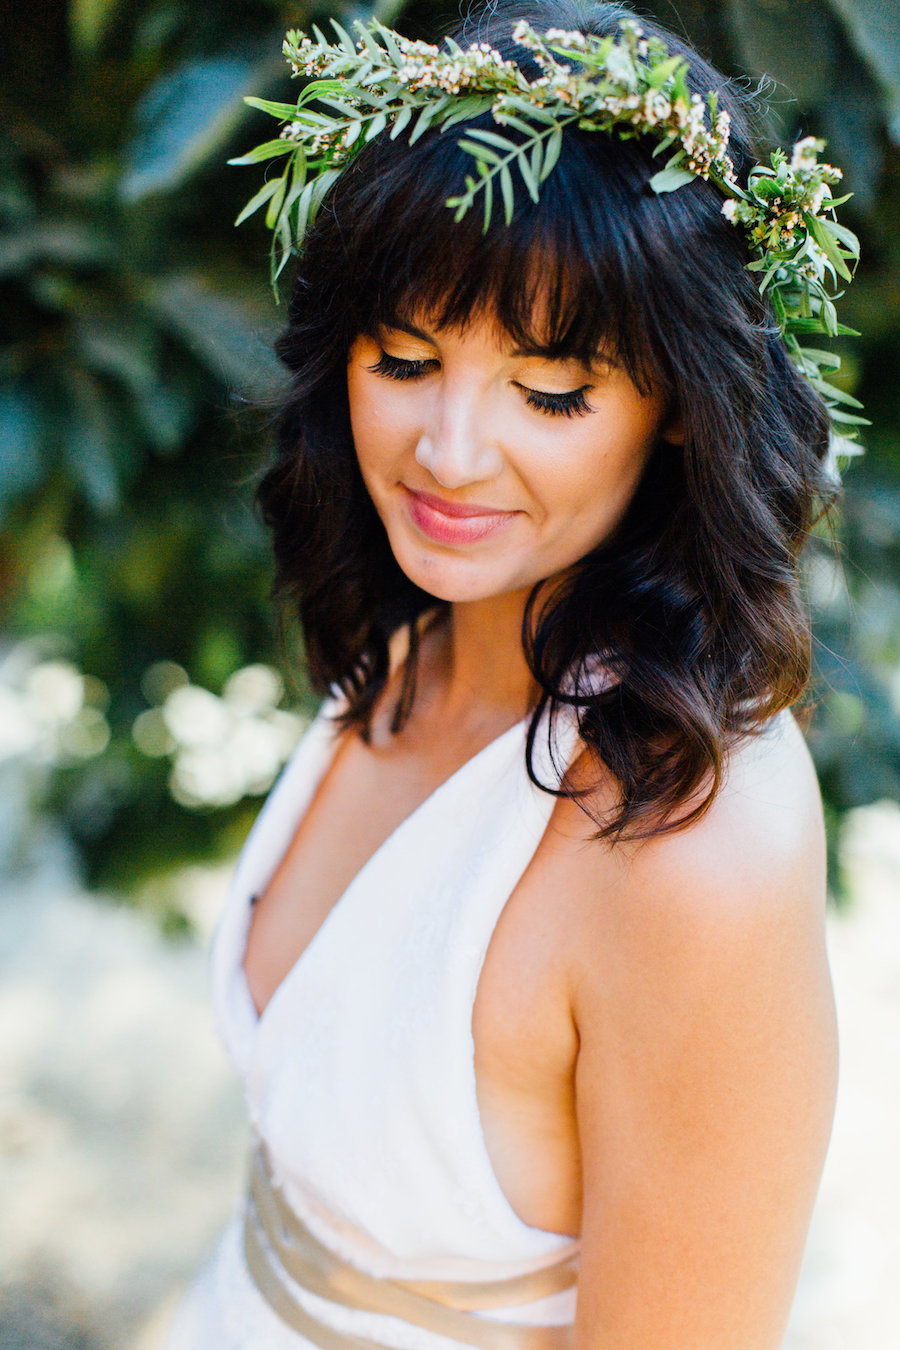 Chic Jewel-Toned Styled Shoot Featured on California Wedding Day17.jpg